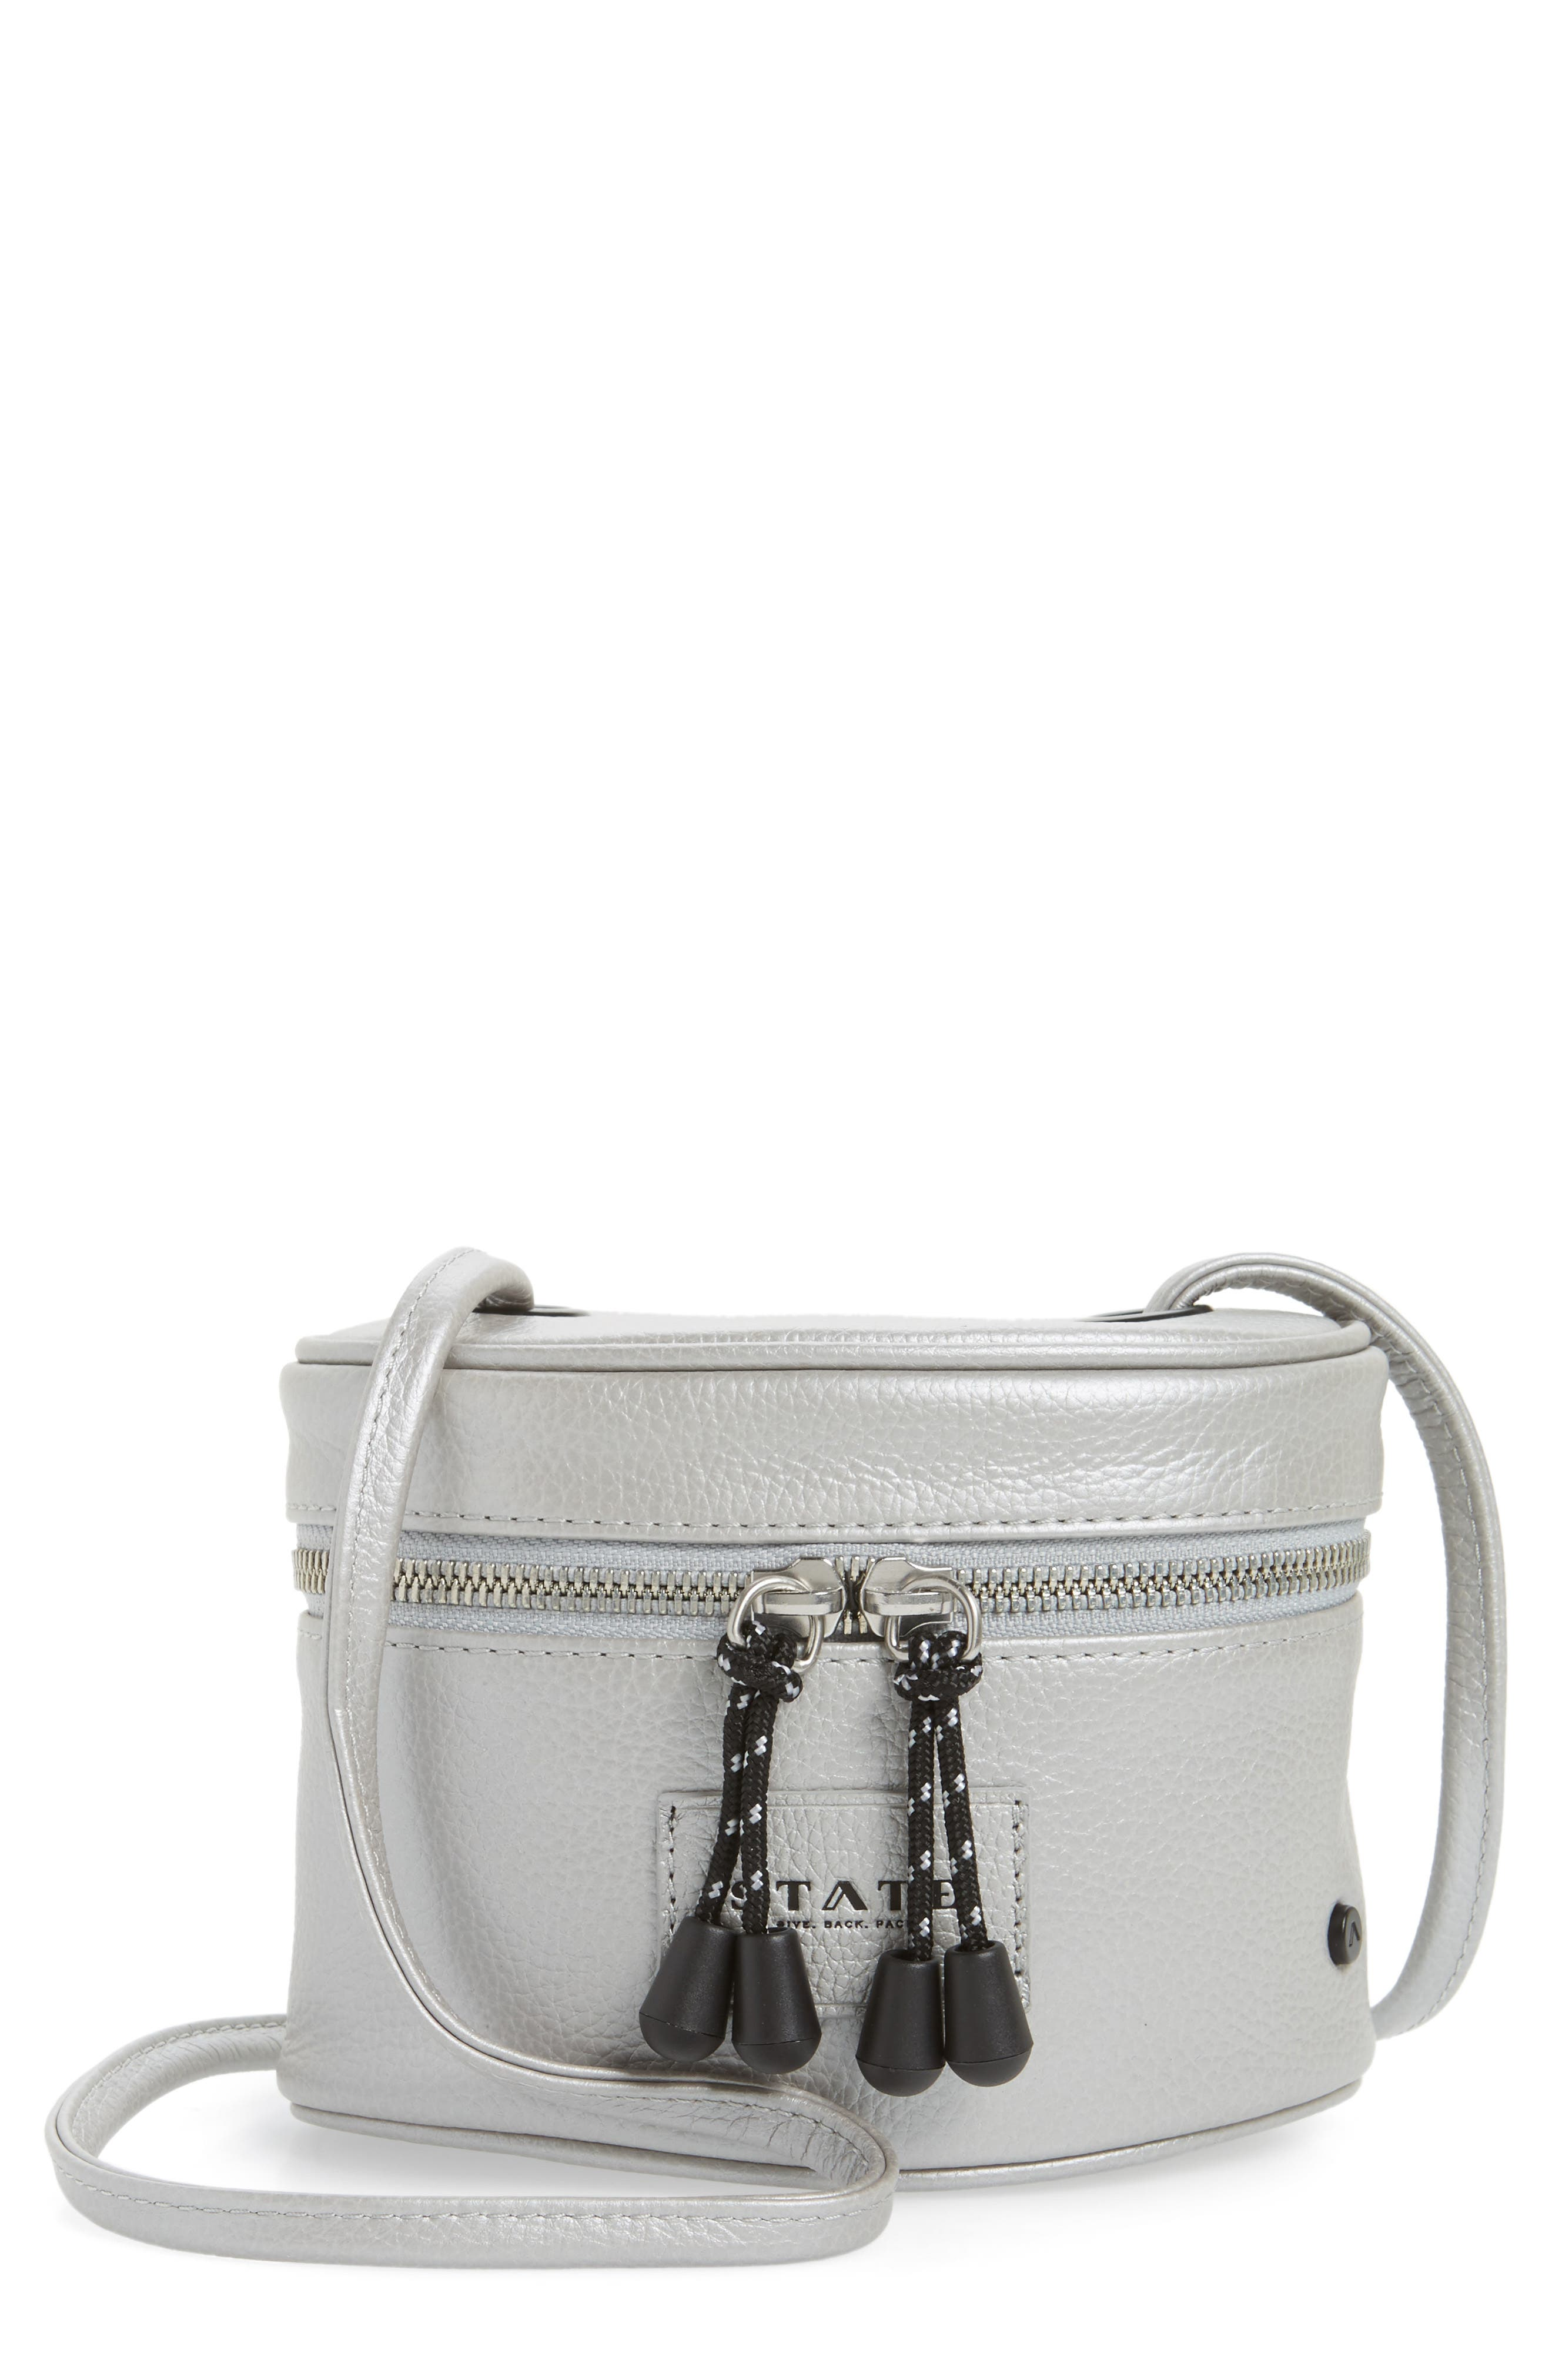 Alternate Image 1 Selected - STATE Bags Greenwood Autumn Leather Crossbody Bag